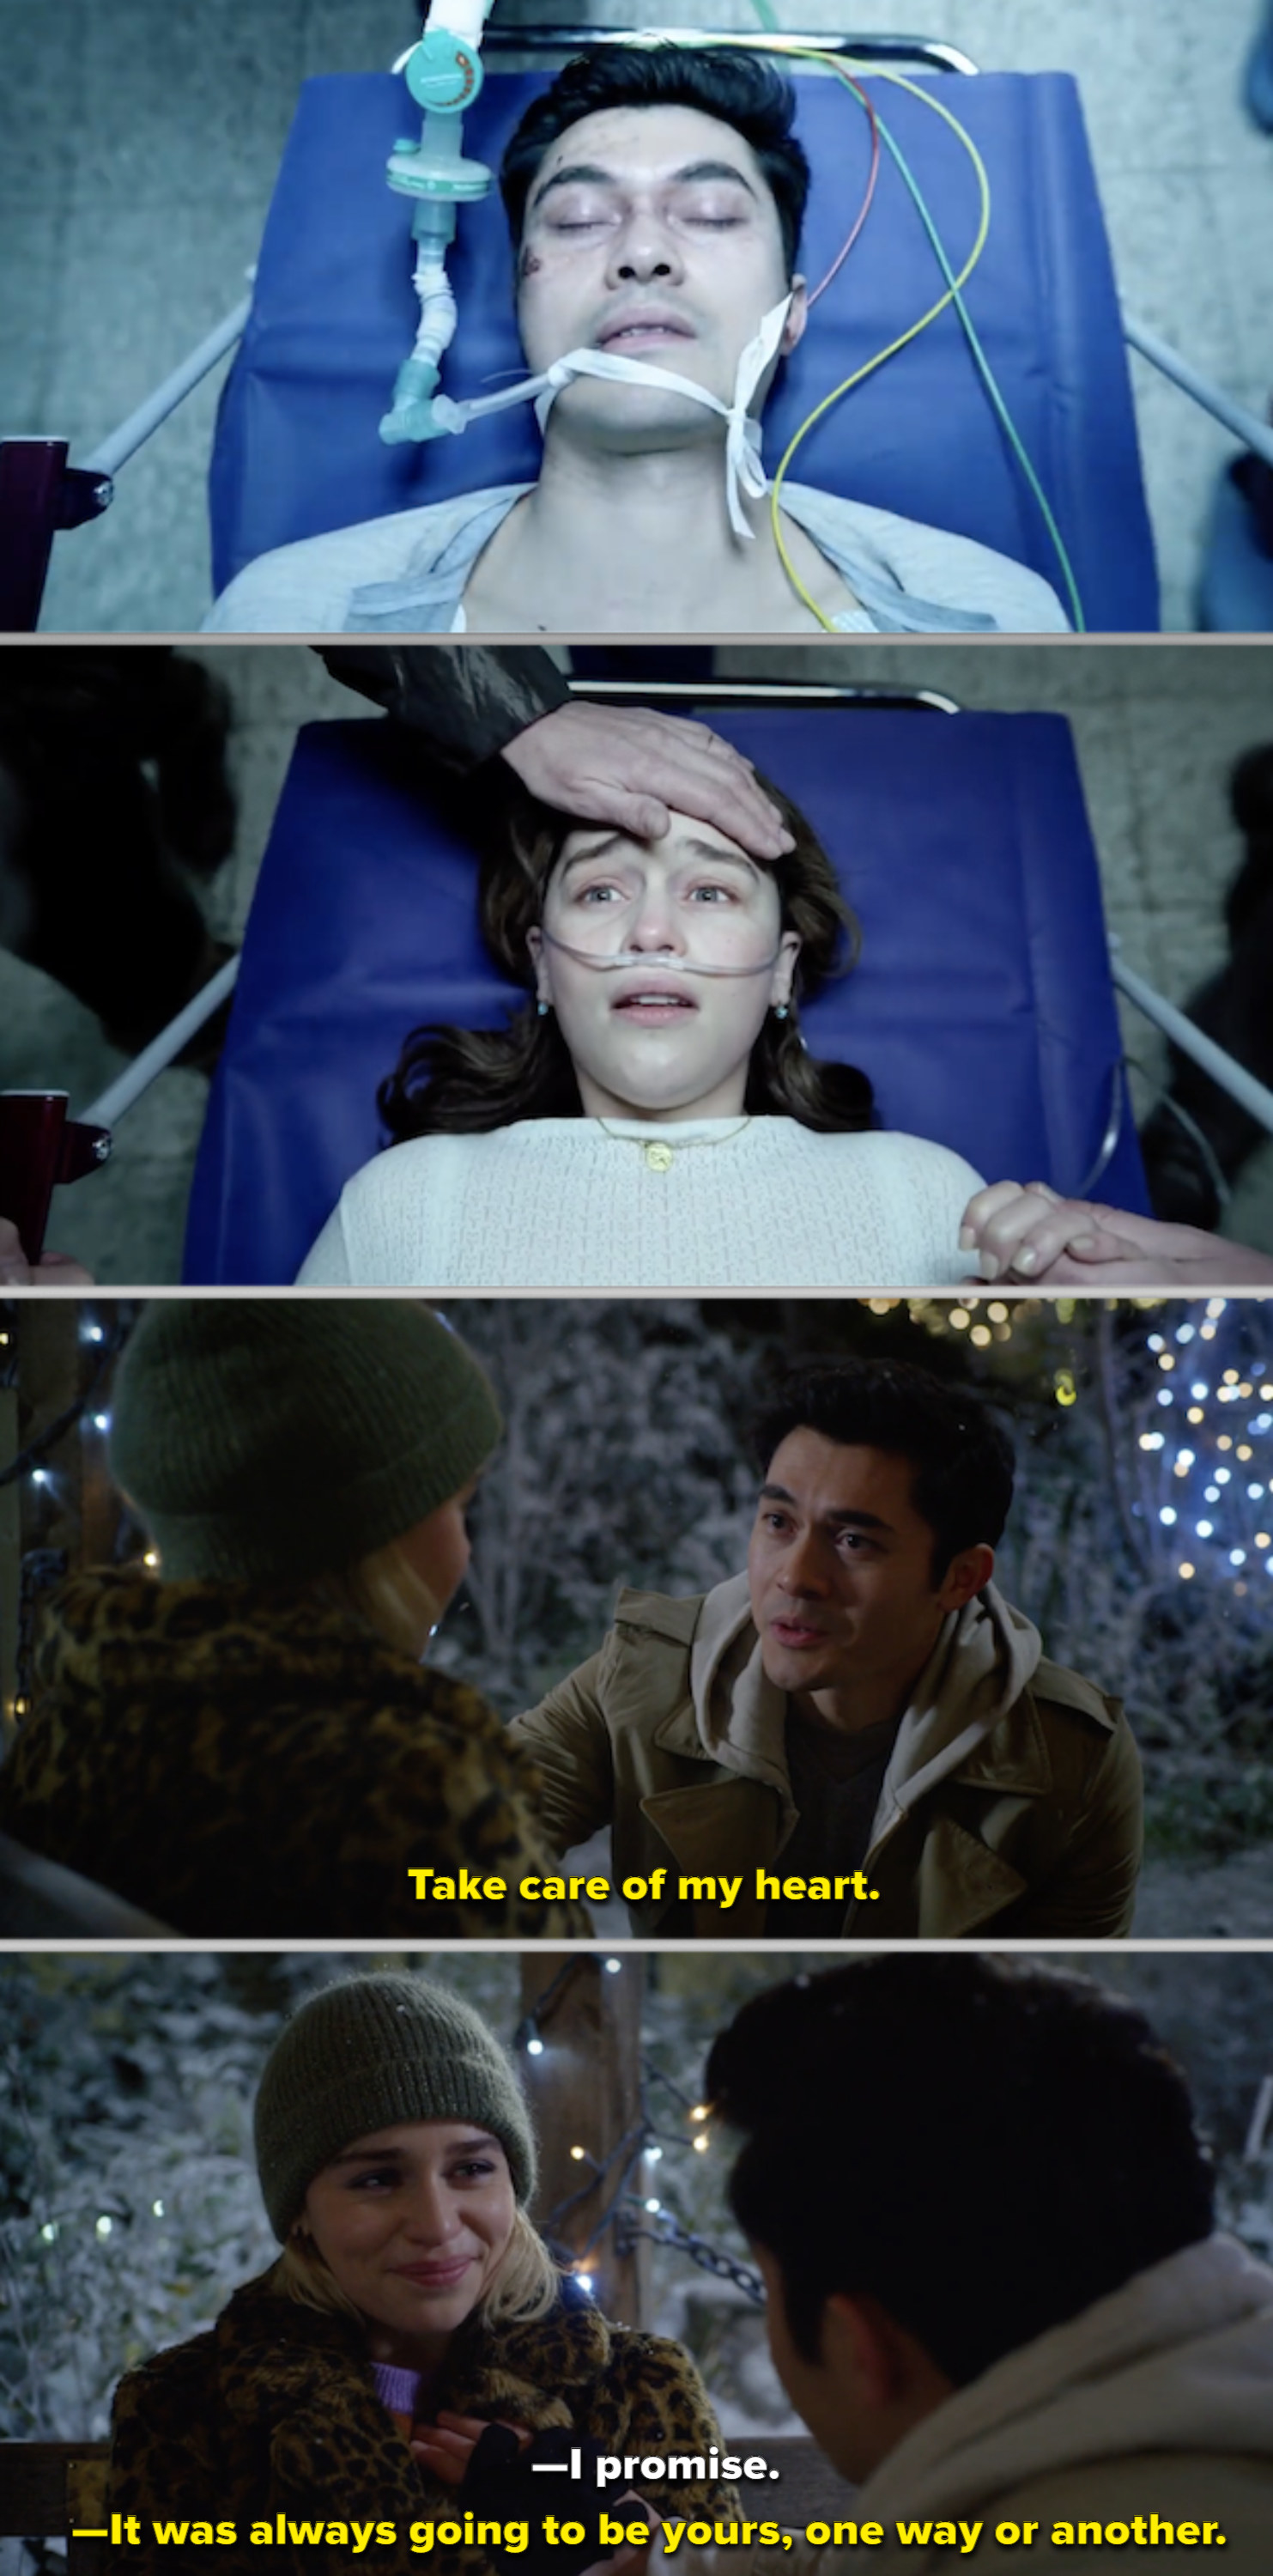 Kate and Tom in the hospital, then them at the bench together